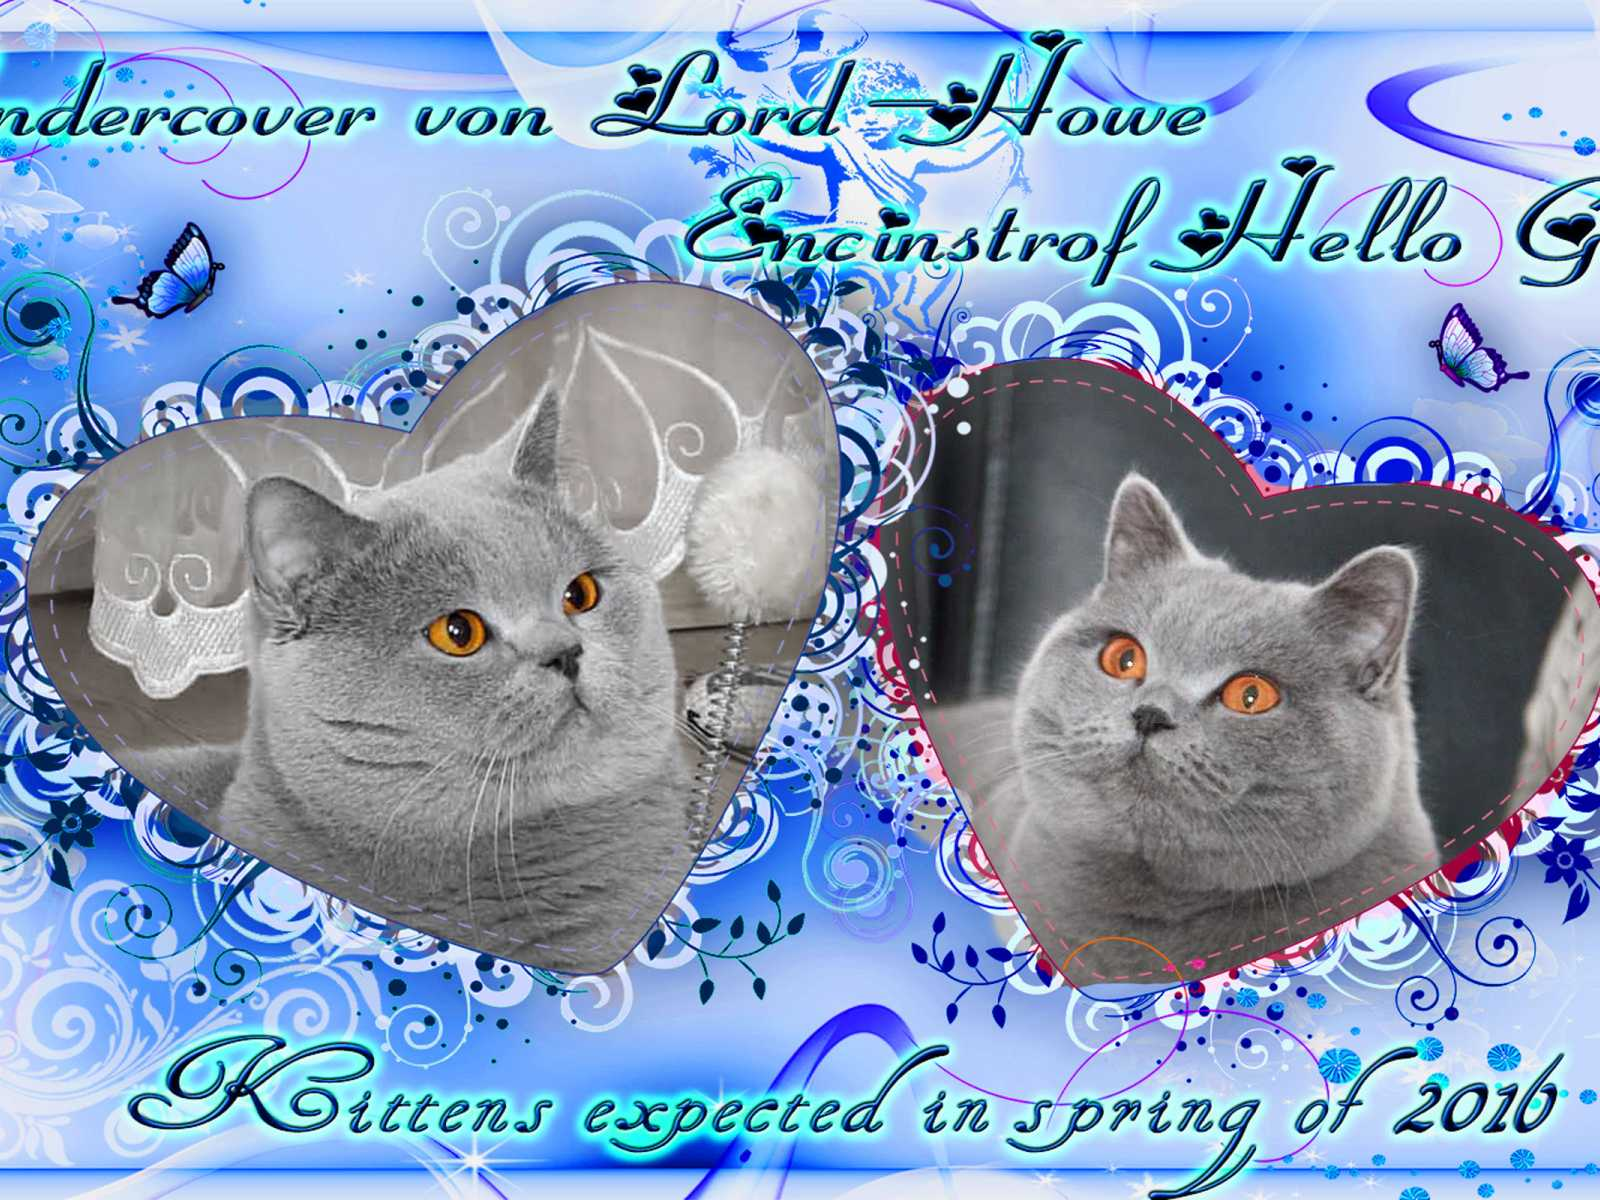 Blue British kittens planned in 2017